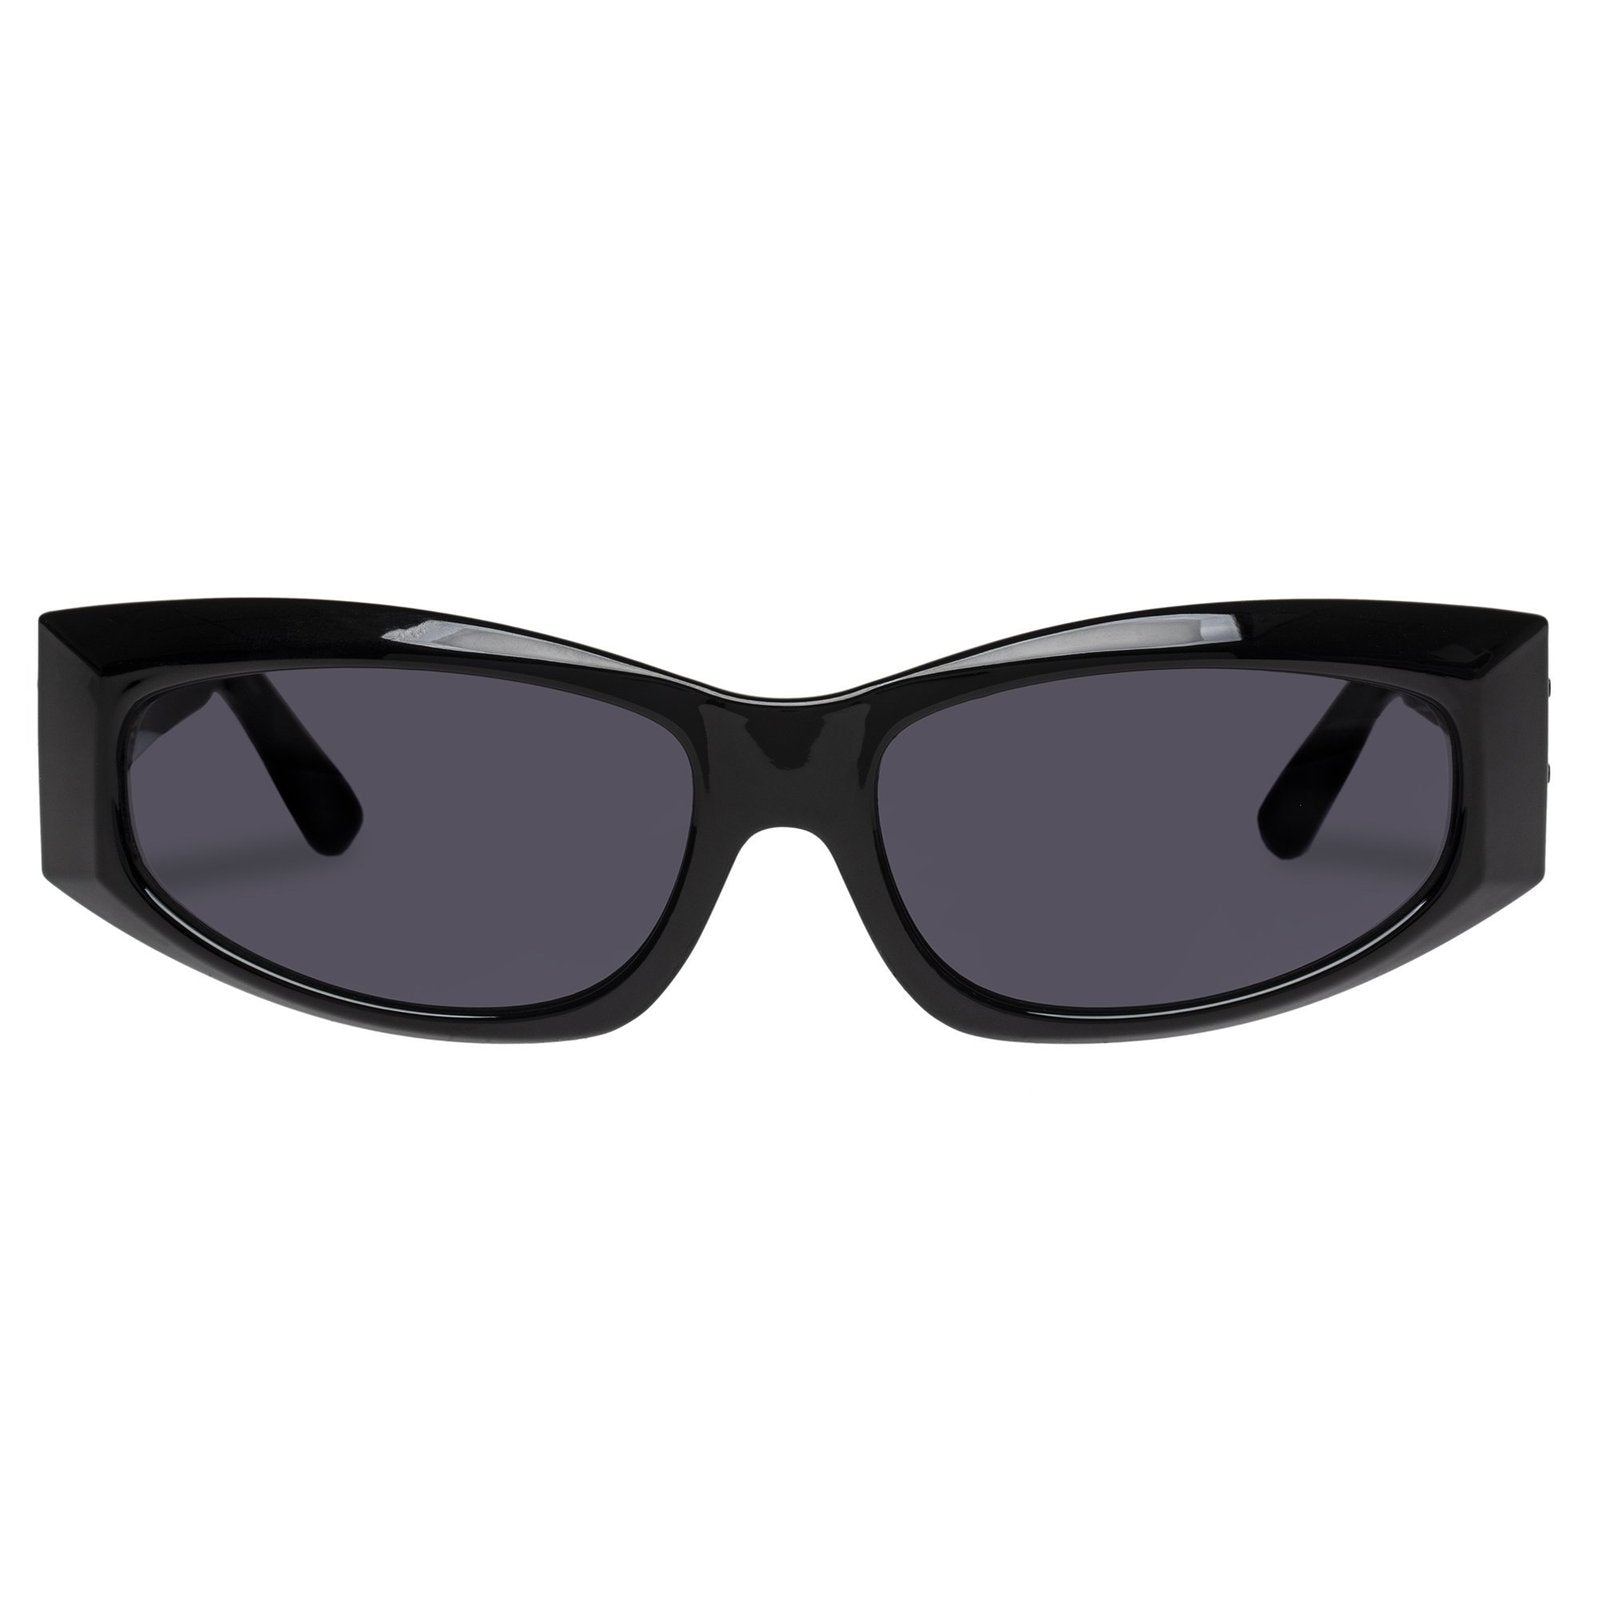 ADAM SELMAN X LE SPECS / THE EDGE / BLACK